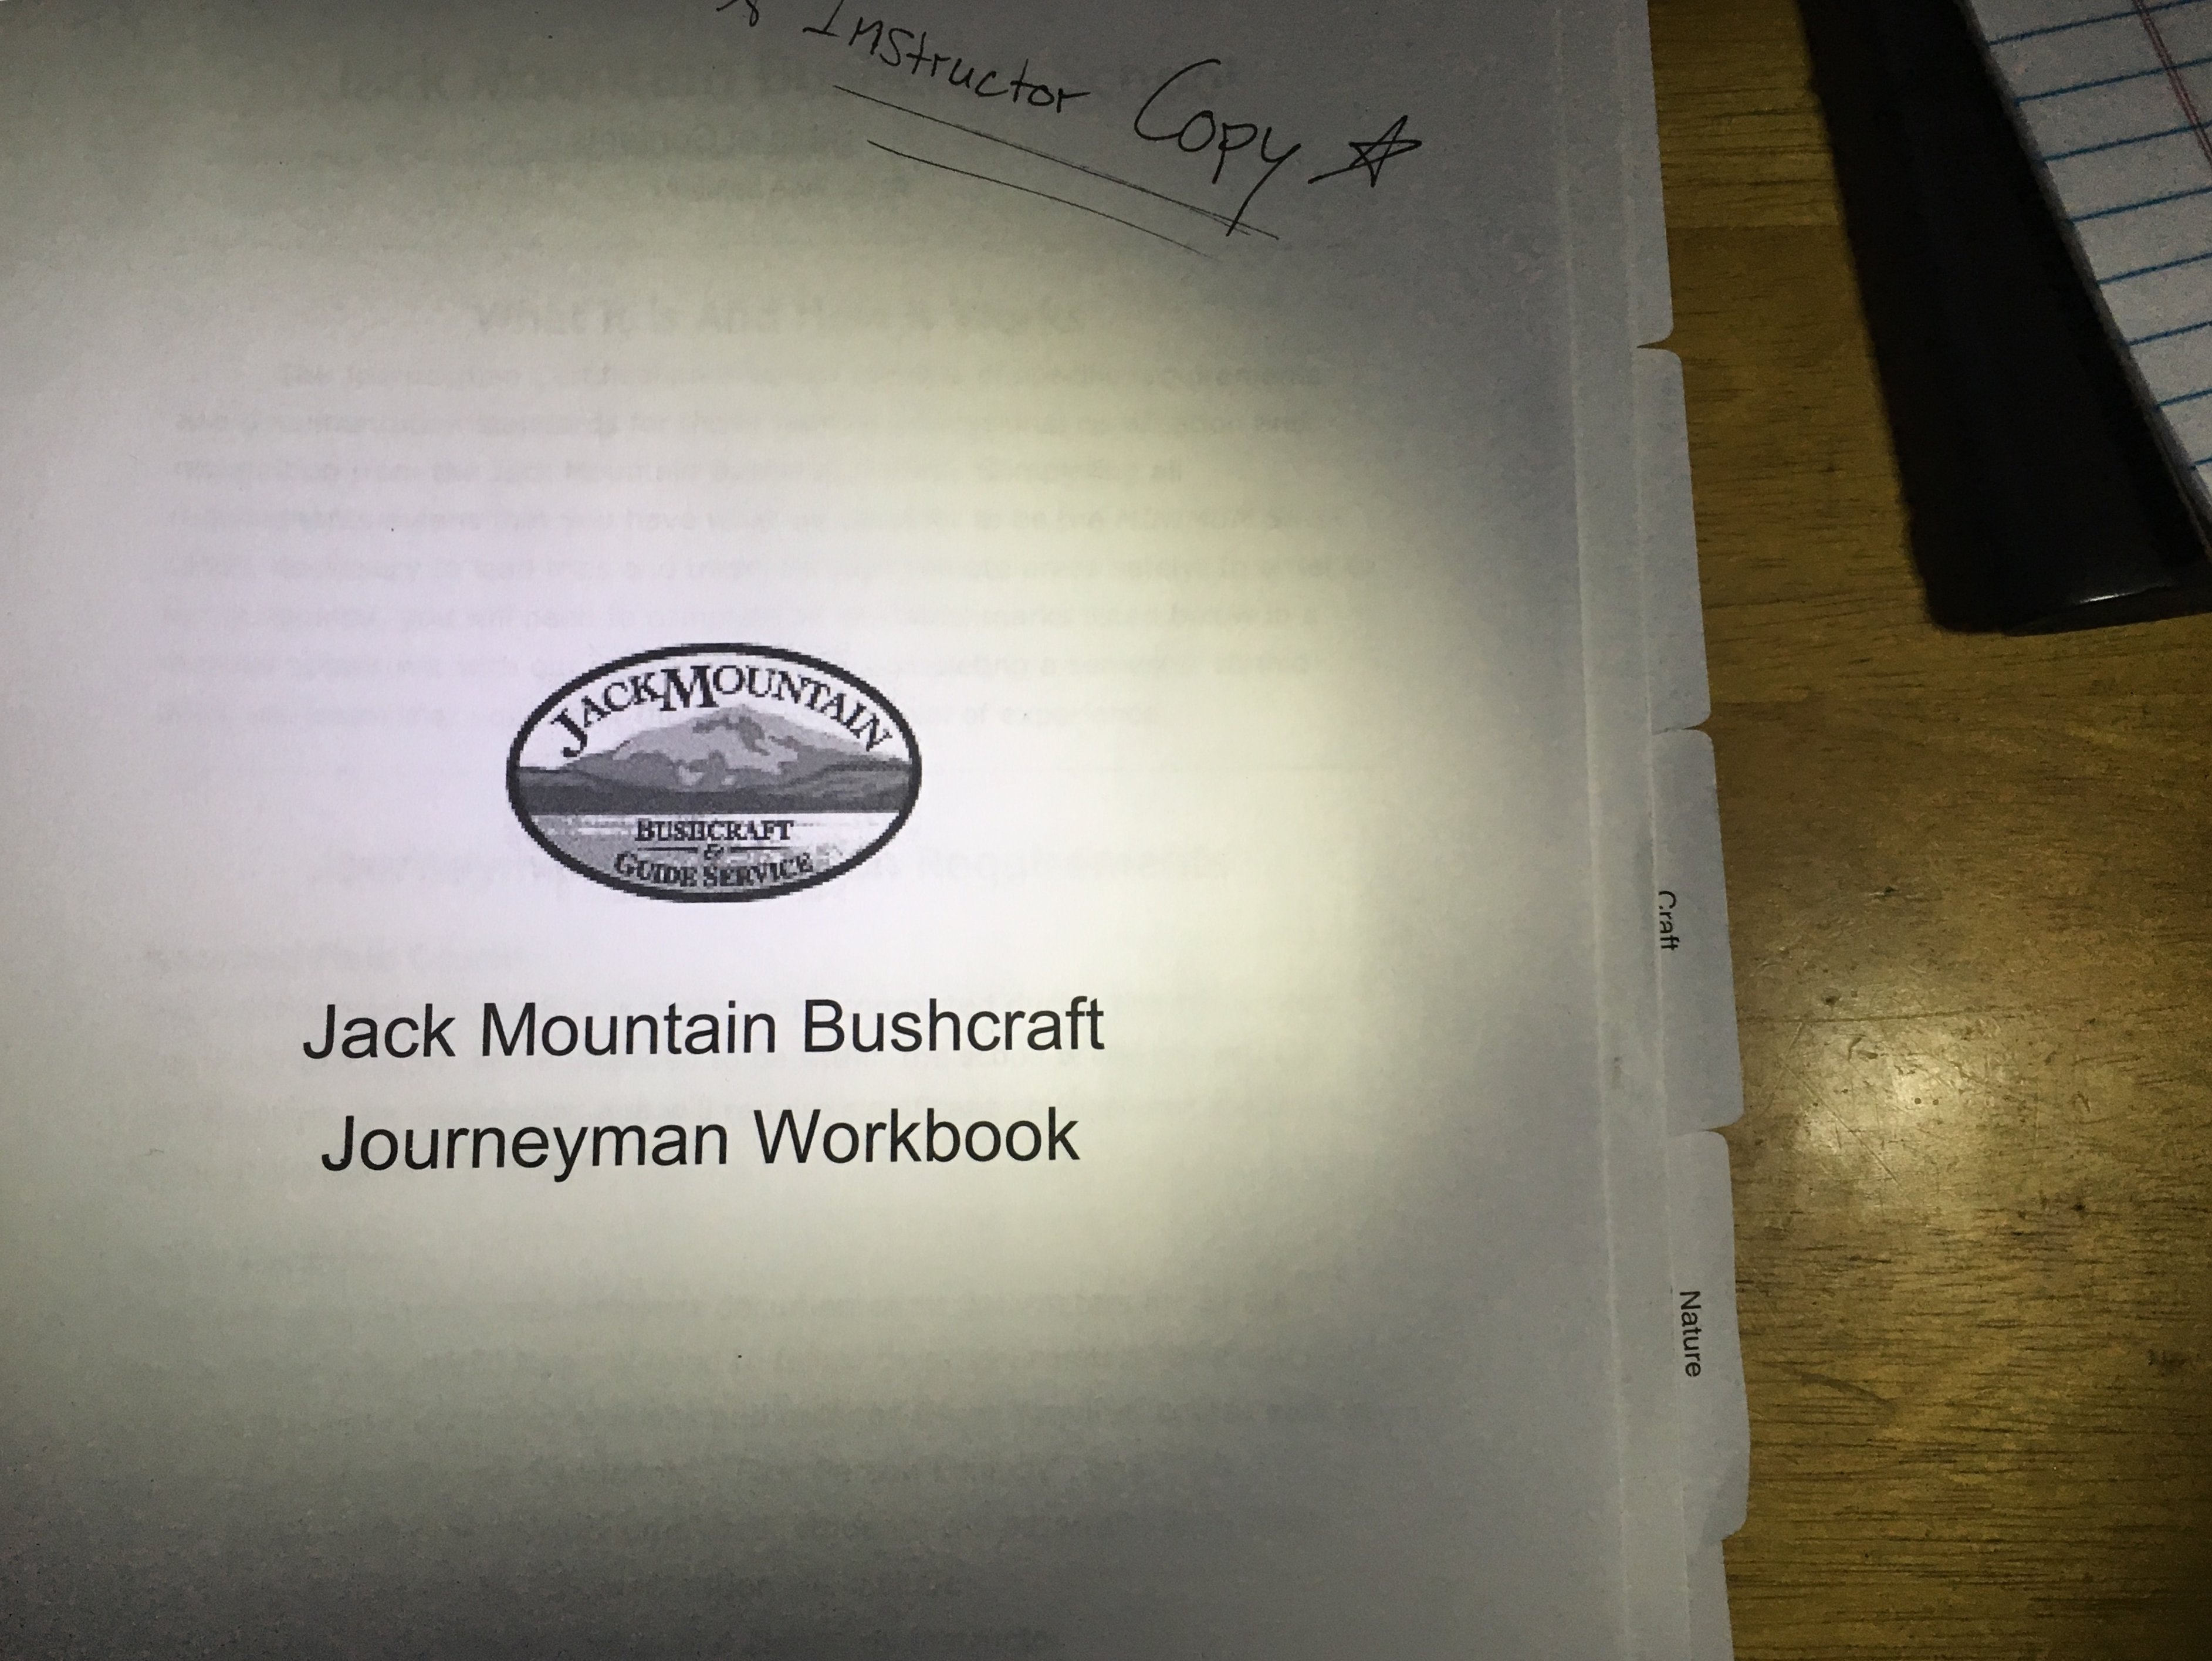 New Workbook For JMBS Journeyman Certification